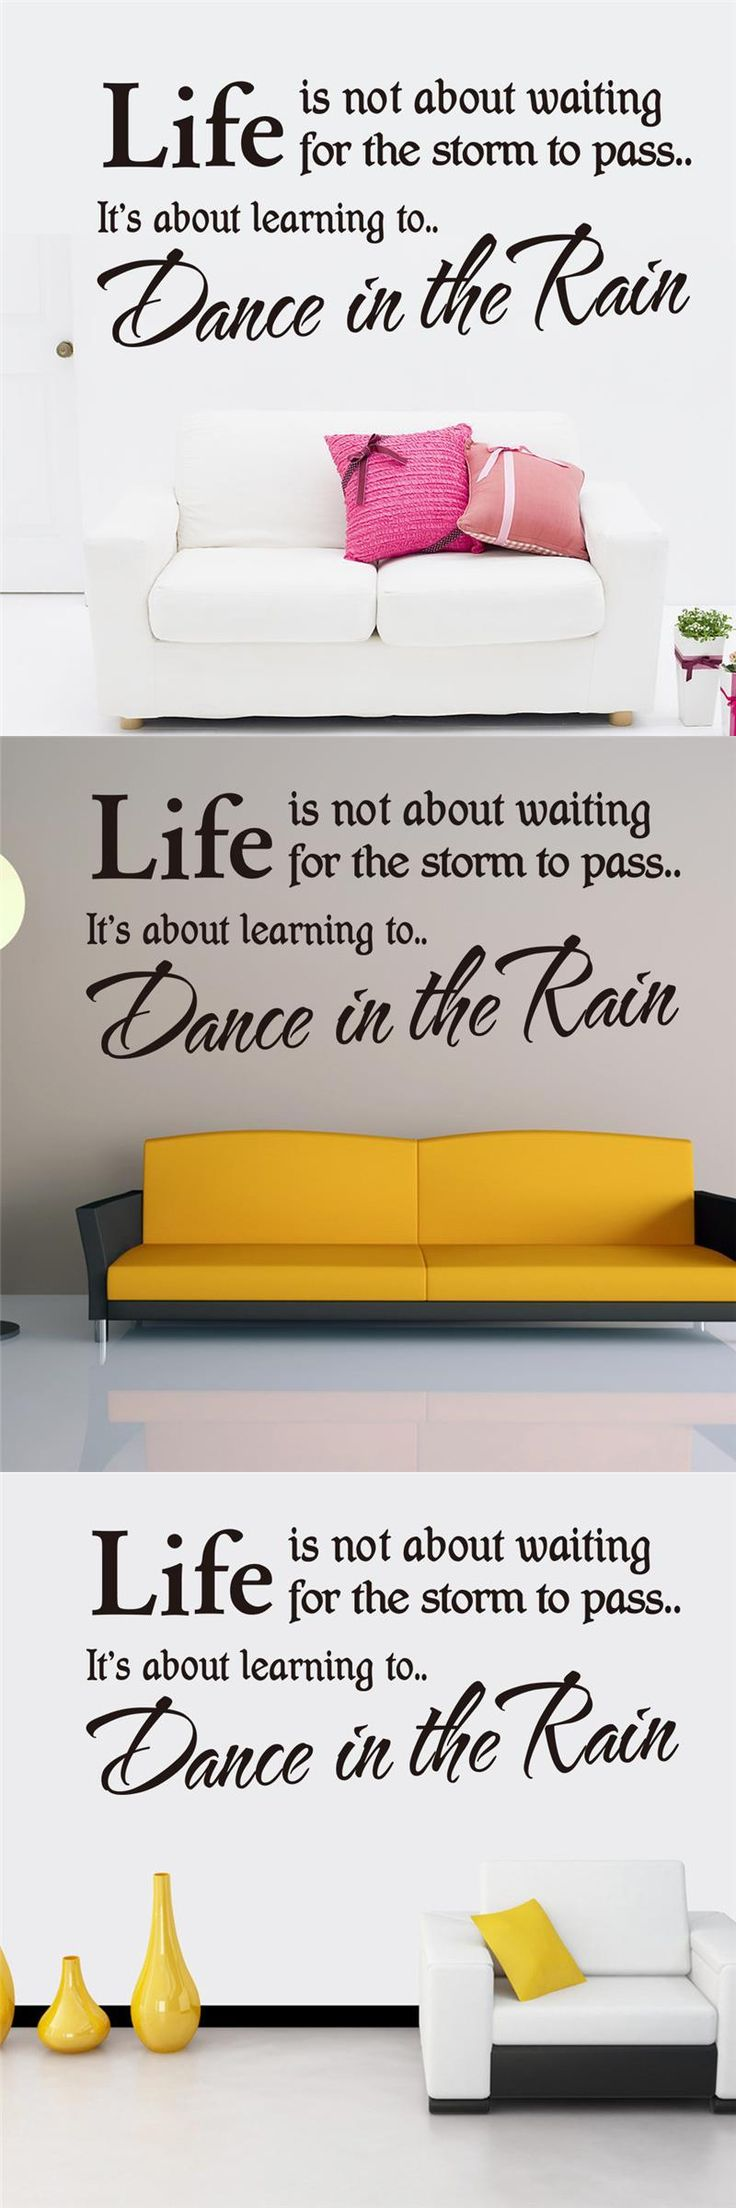 23 best religious and inspiring images on pinterest wall visit to buy life inspirational quotes wall stickers home decorations 8212 diy decals